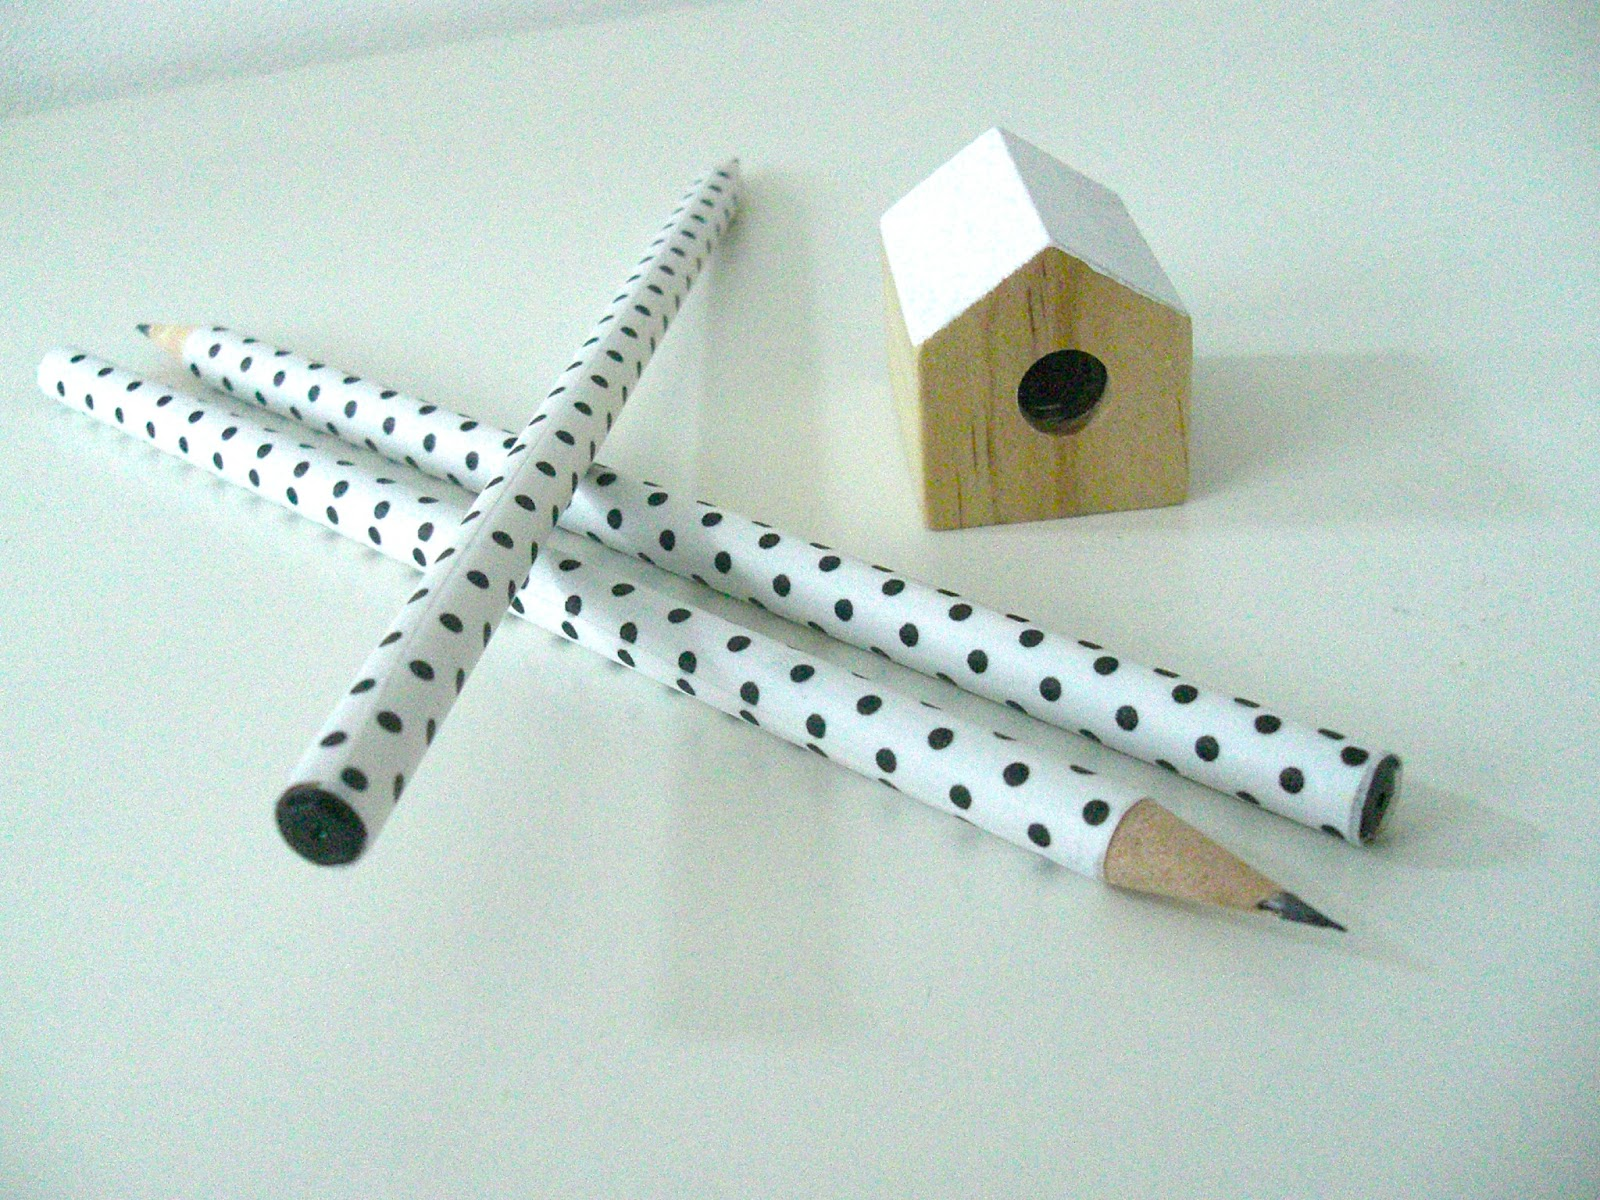 Gabulle in wonderland customiser vos crayons avec du - Que faire avec du masking tape ...